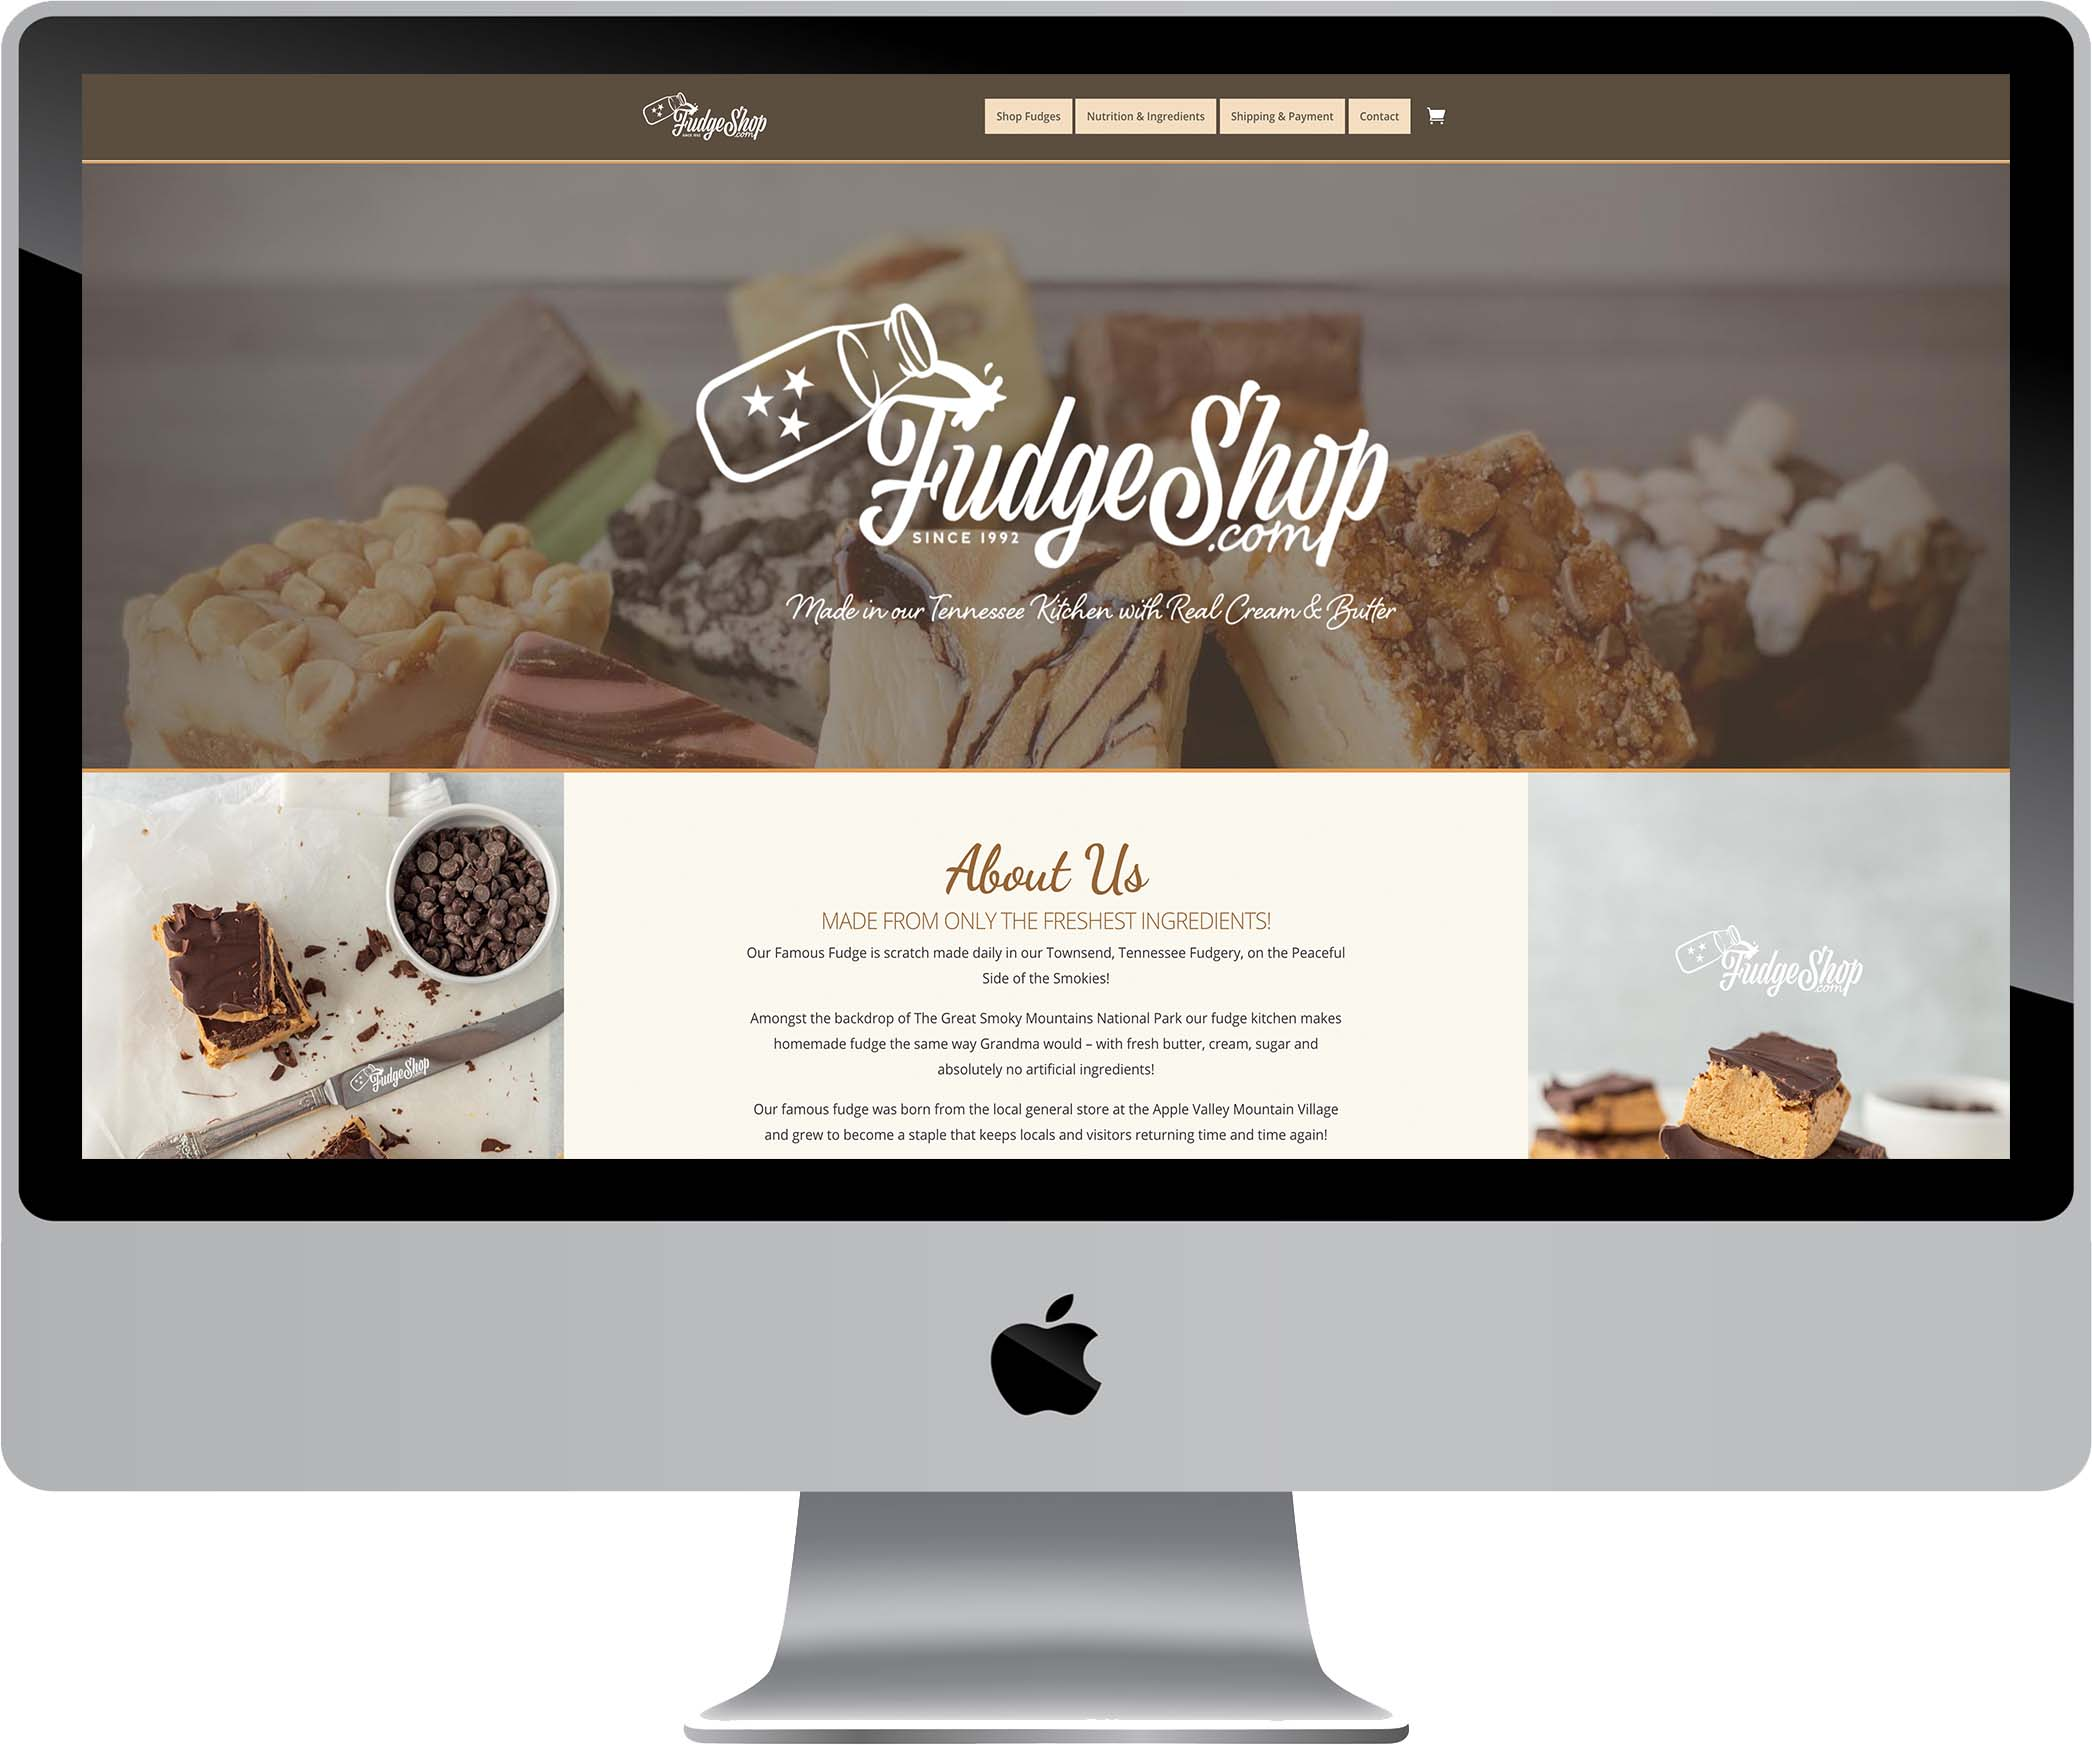 Fudge Shop Website Design